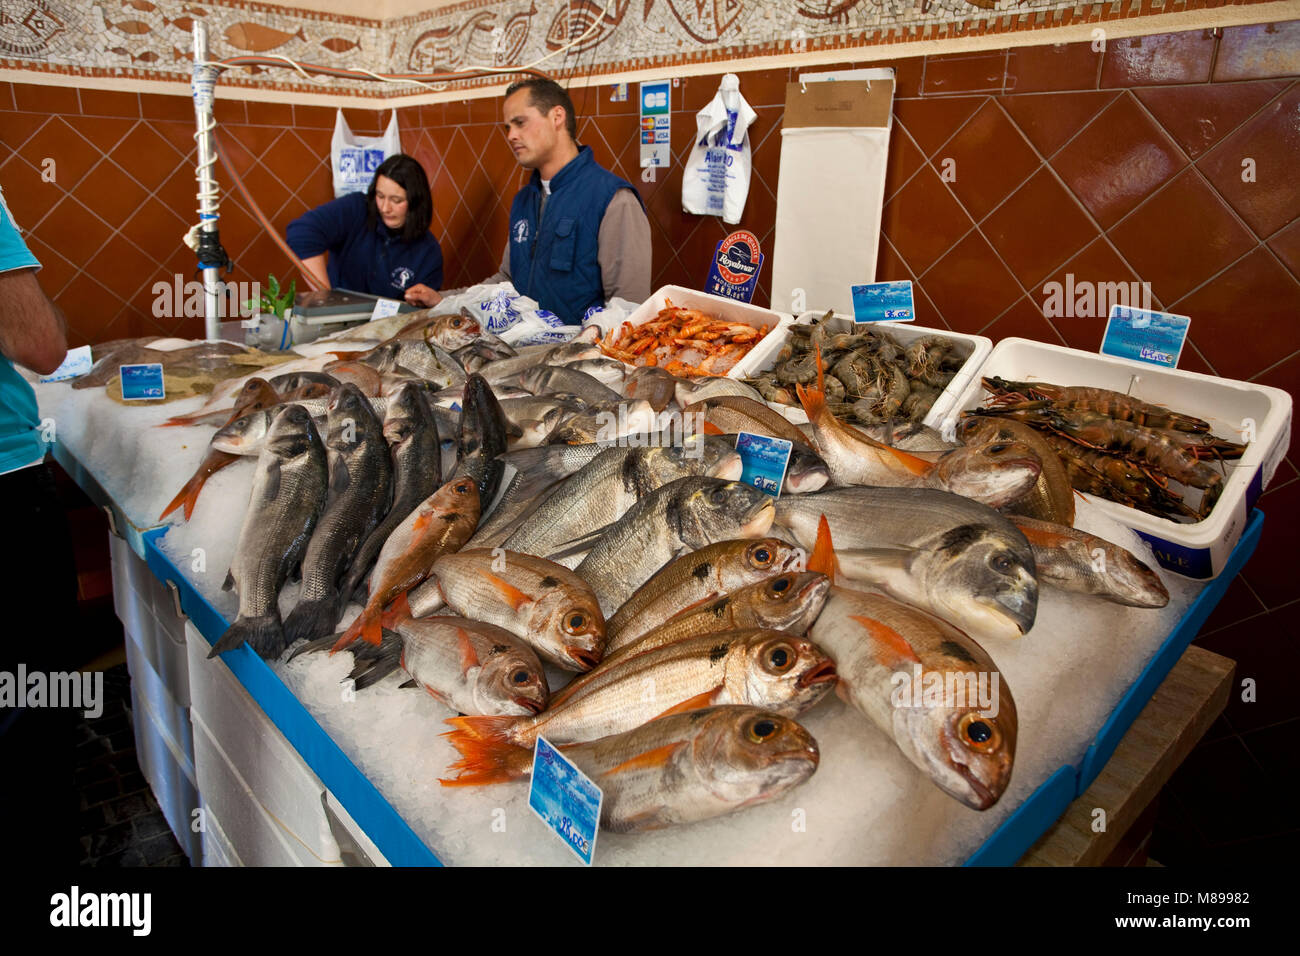 Poissonerie, a fish shop at Place aux Herbes, old town of Saint-Tropez, french riviera, South France, Cote d'Azur, - Stock Image